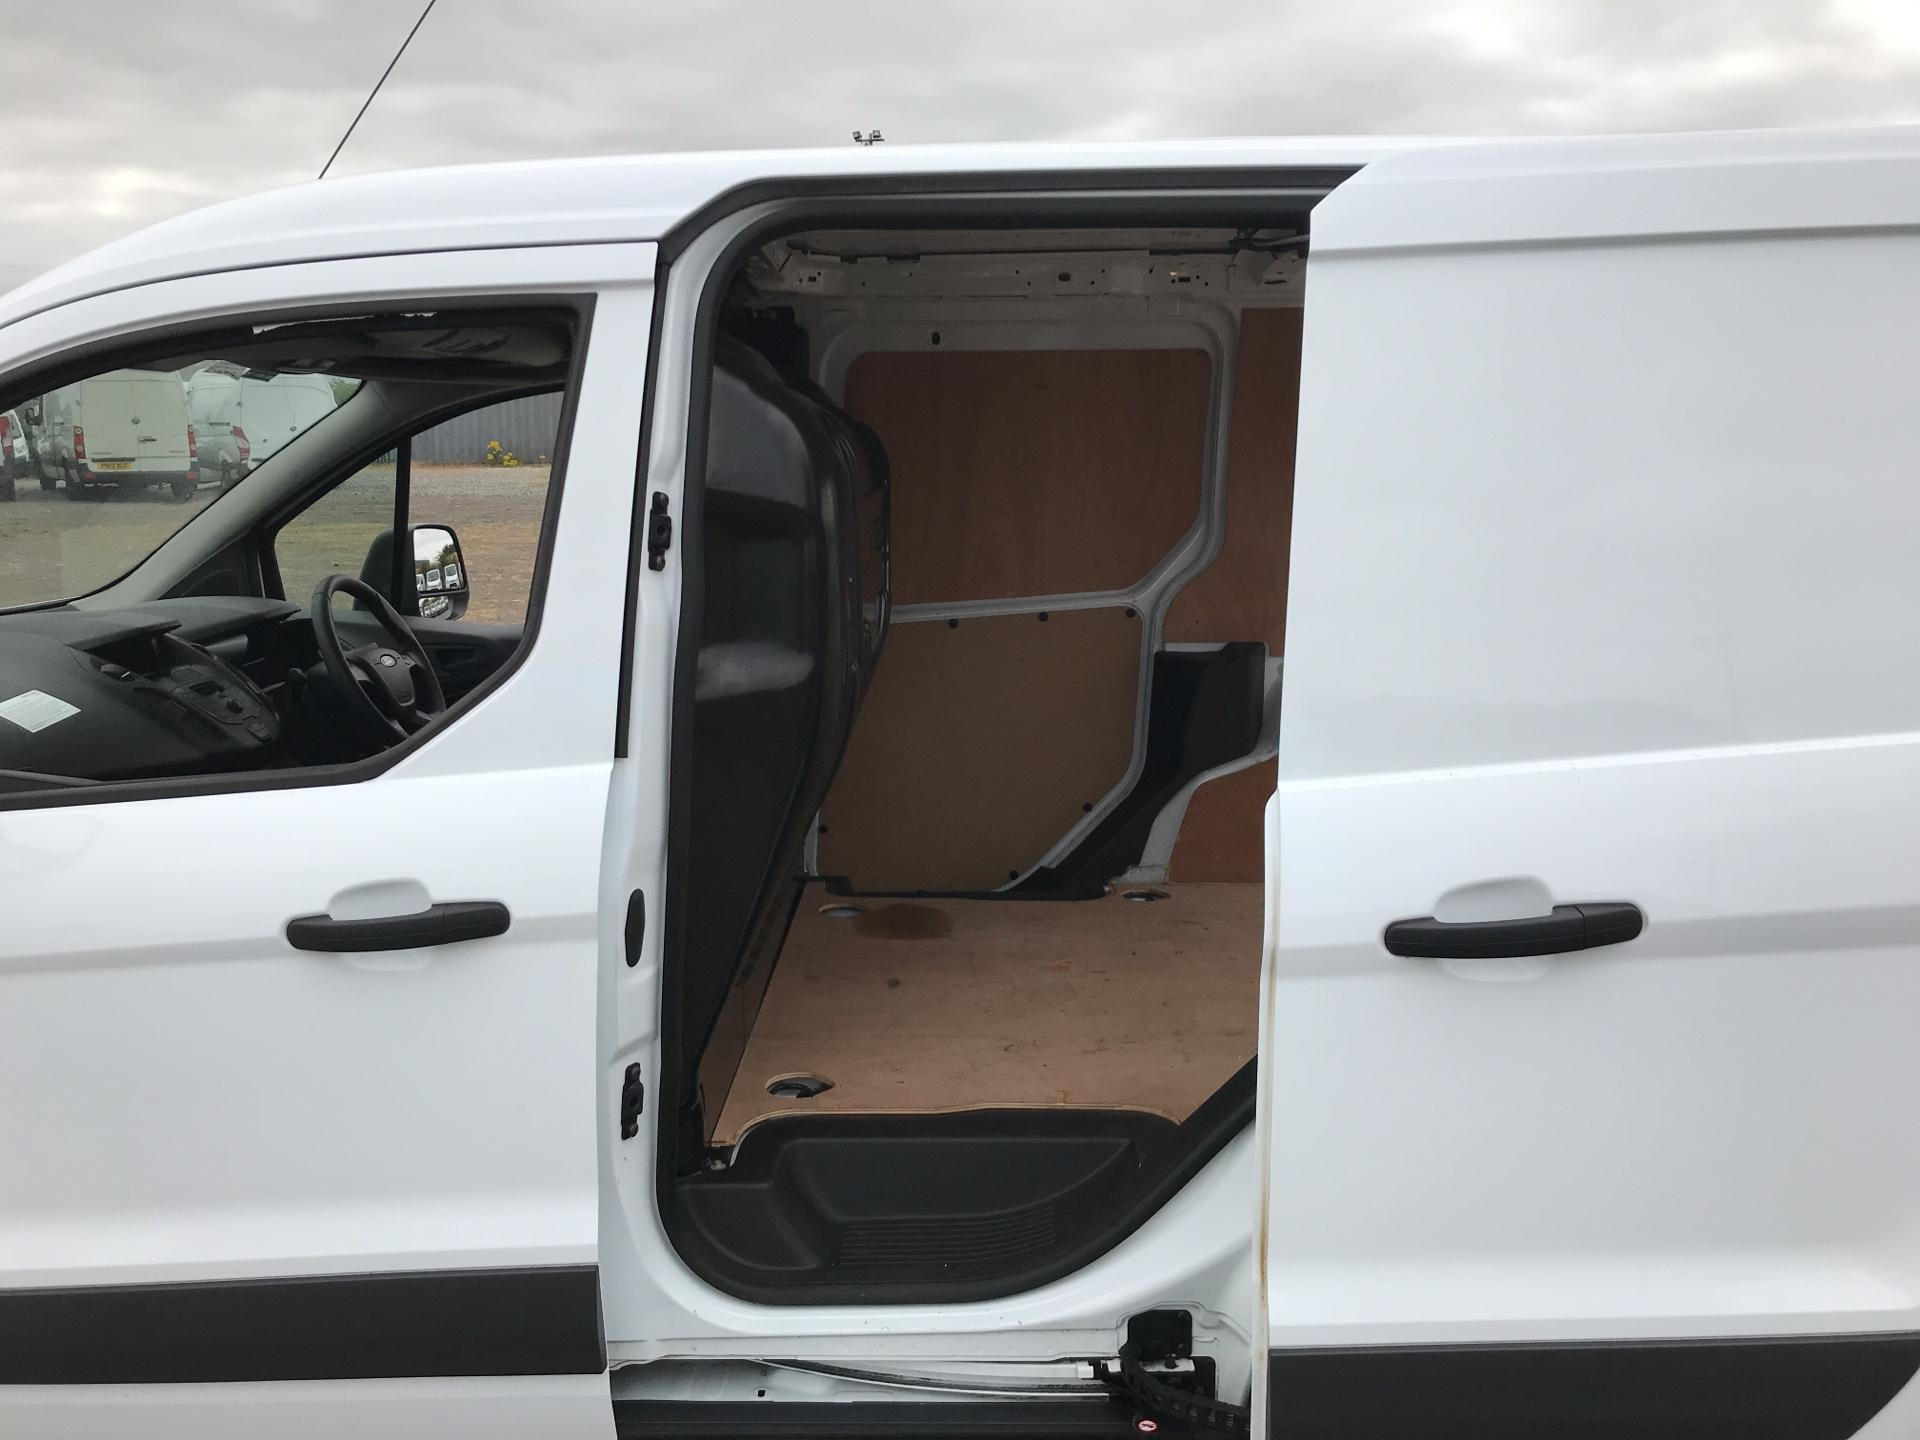 2016 Ford Transit Connect 200 L1 DIESEL 1.6 Tdci 75Ps Van EURO 5 (FN16VCW) Image 18